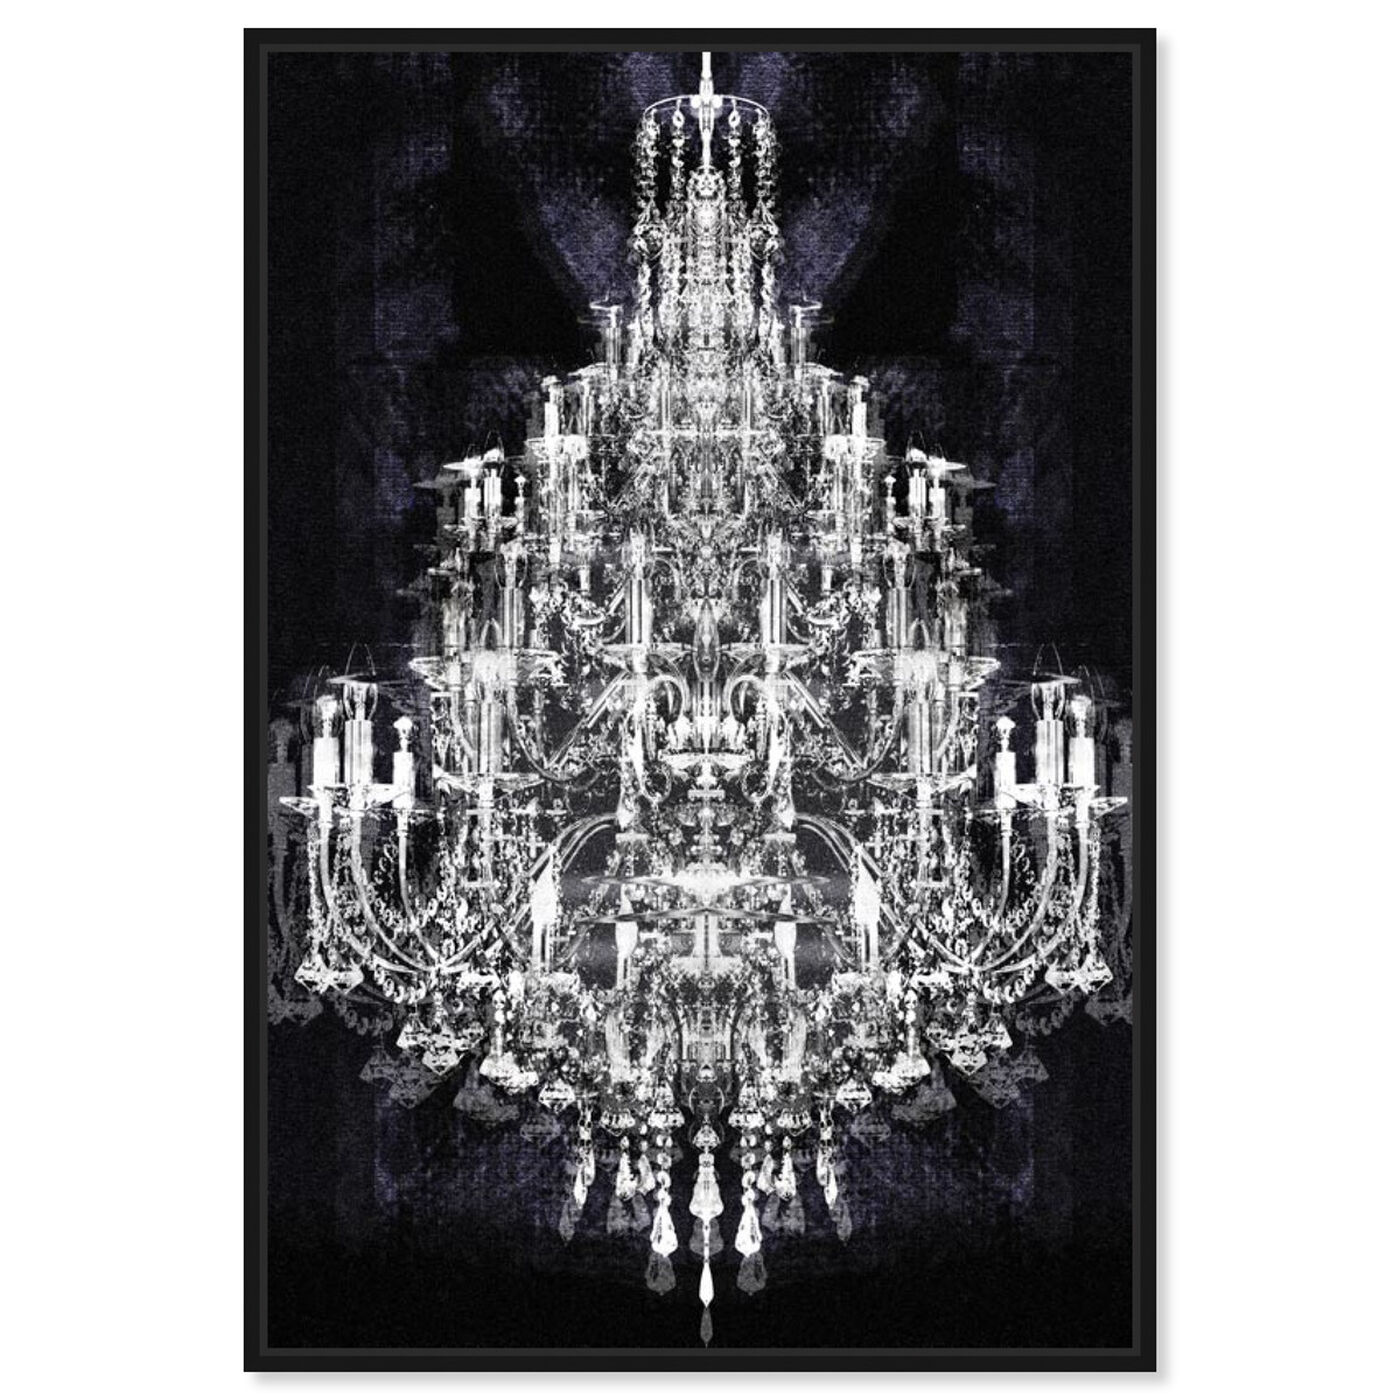 Front view of Montecarlo Crystal featuring fashion and glam and chandeliers art.